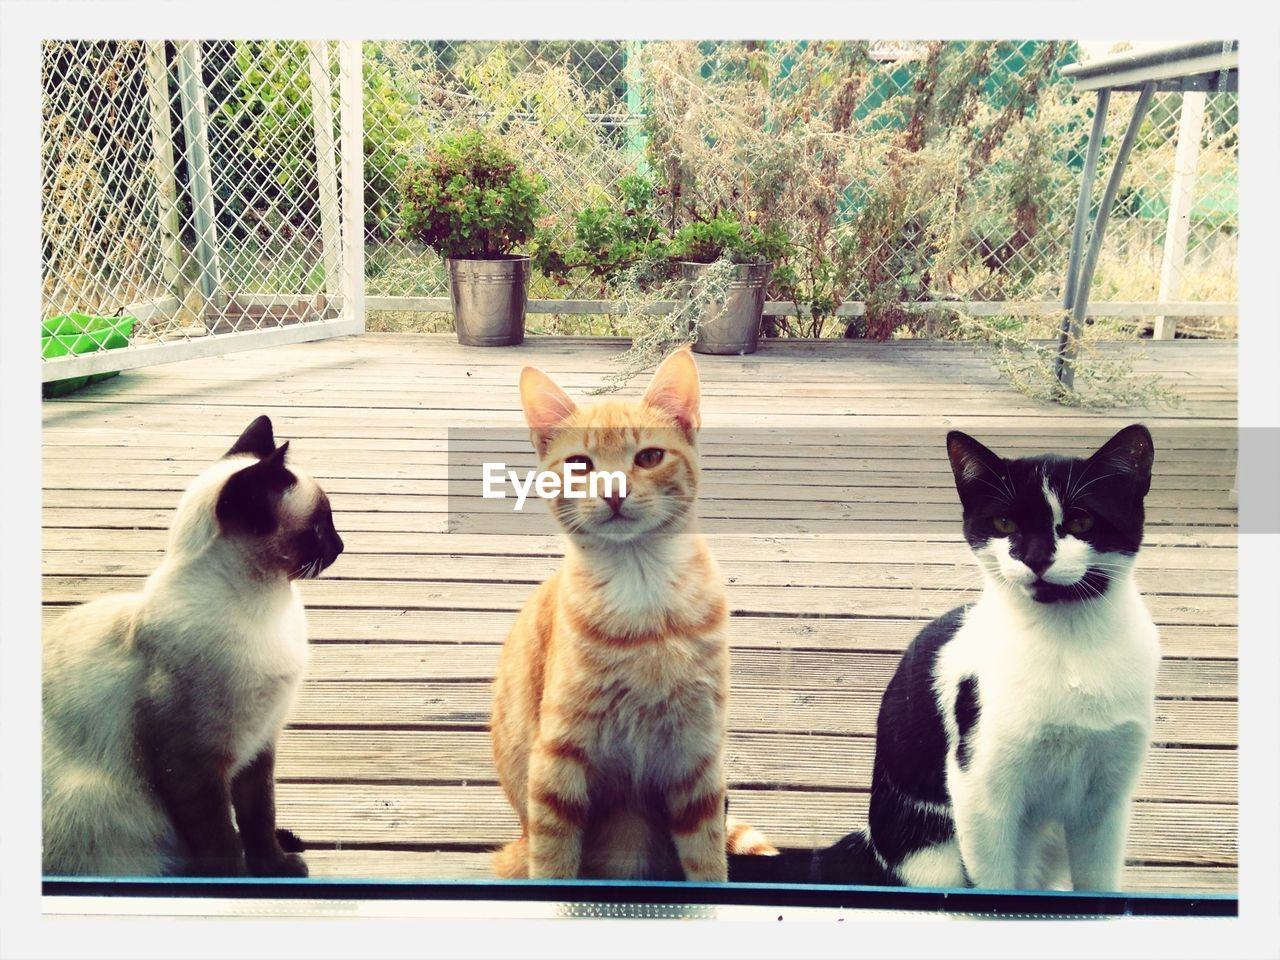 Portrait of three cats on wood paneled floor